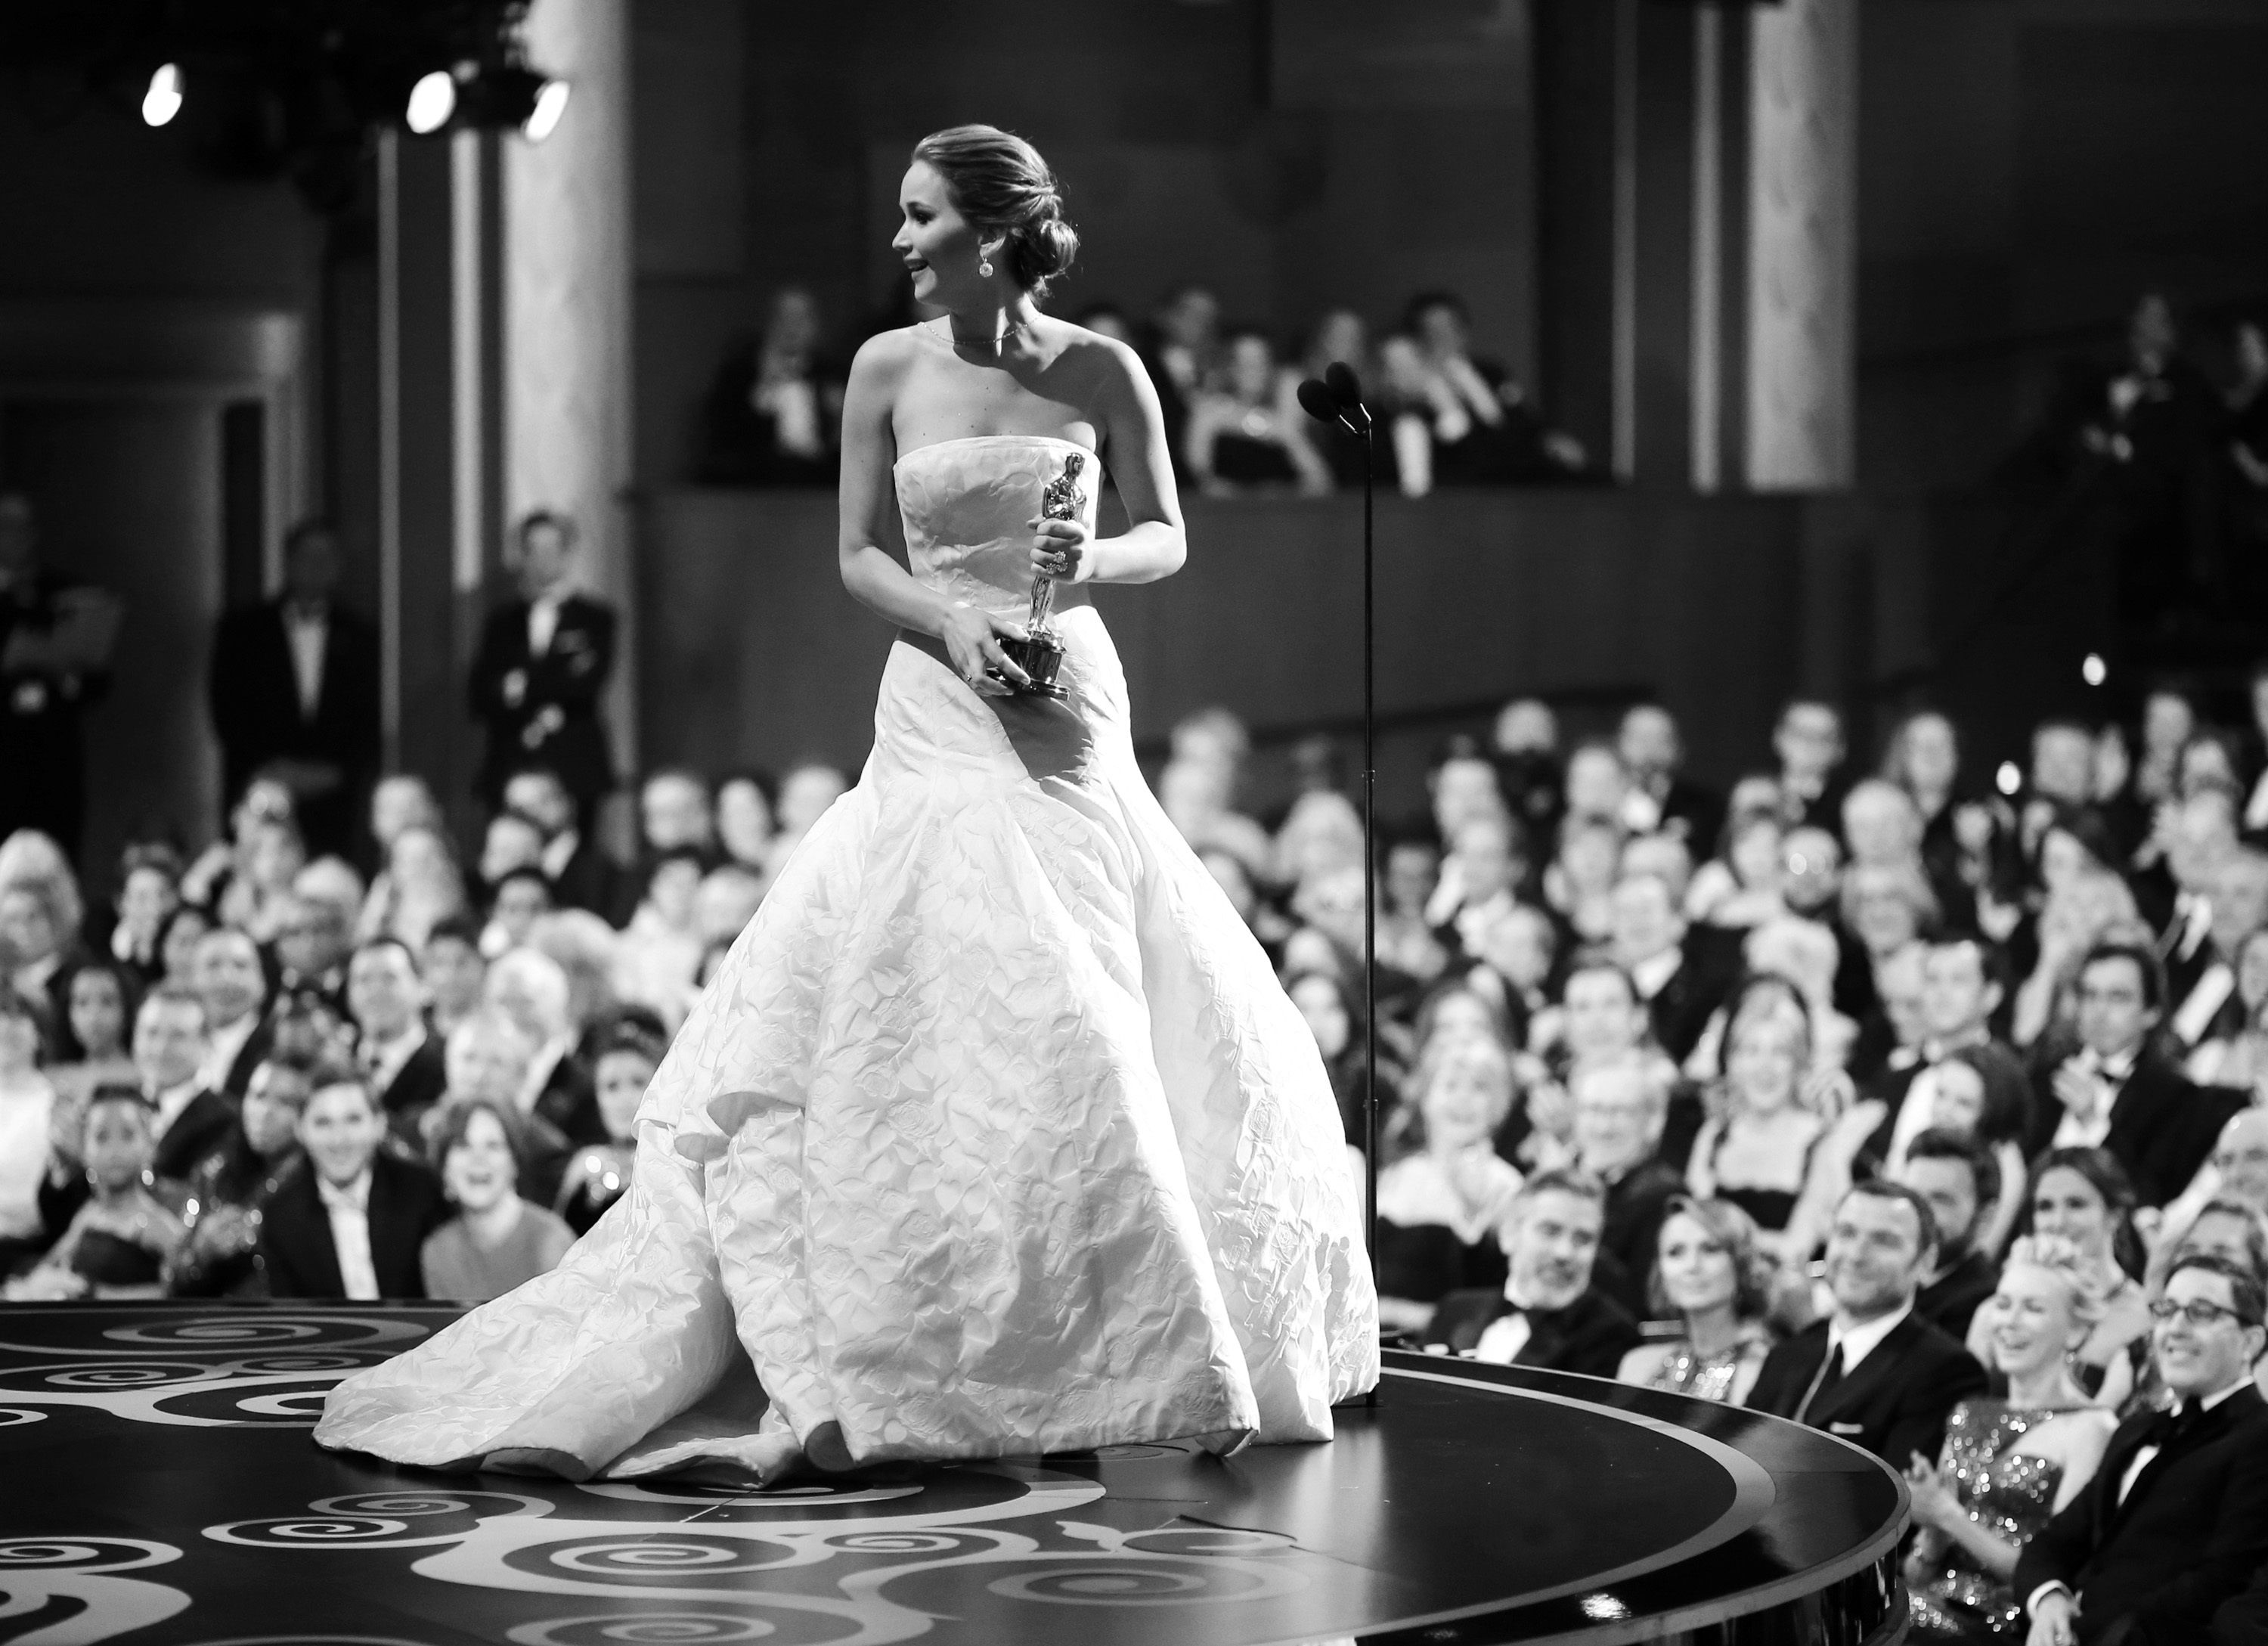 Christopher Polk, Jennifer Lawrence receiving the Academy Award for Best Actress for her role in Silver Linings Playbook, 2013 ©